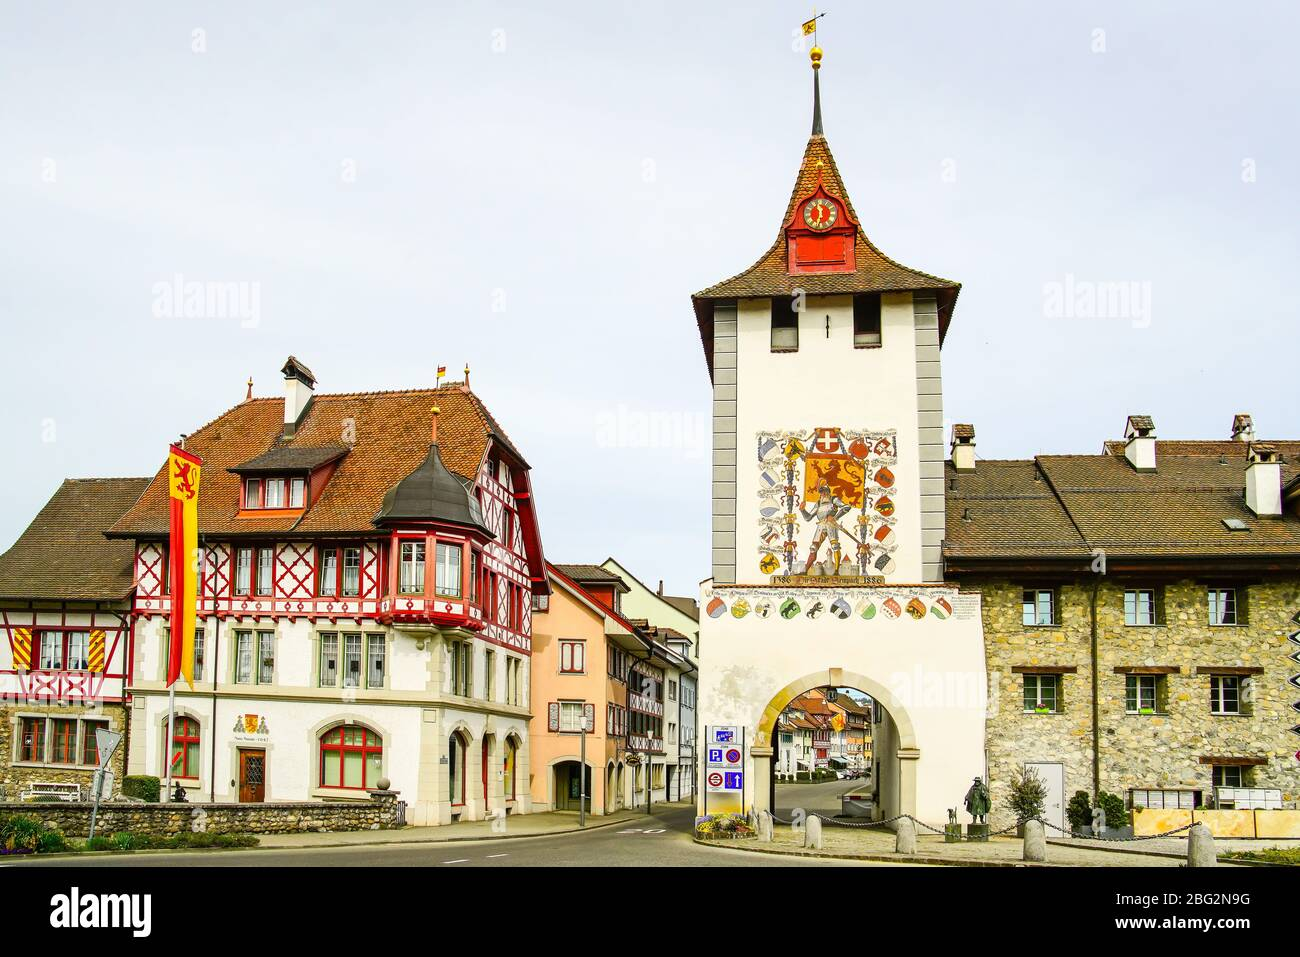 The Lucerne gate (Luzernertor) at the entrance to Sempach, Canton Lucerne, Switzerland. Stock Photo